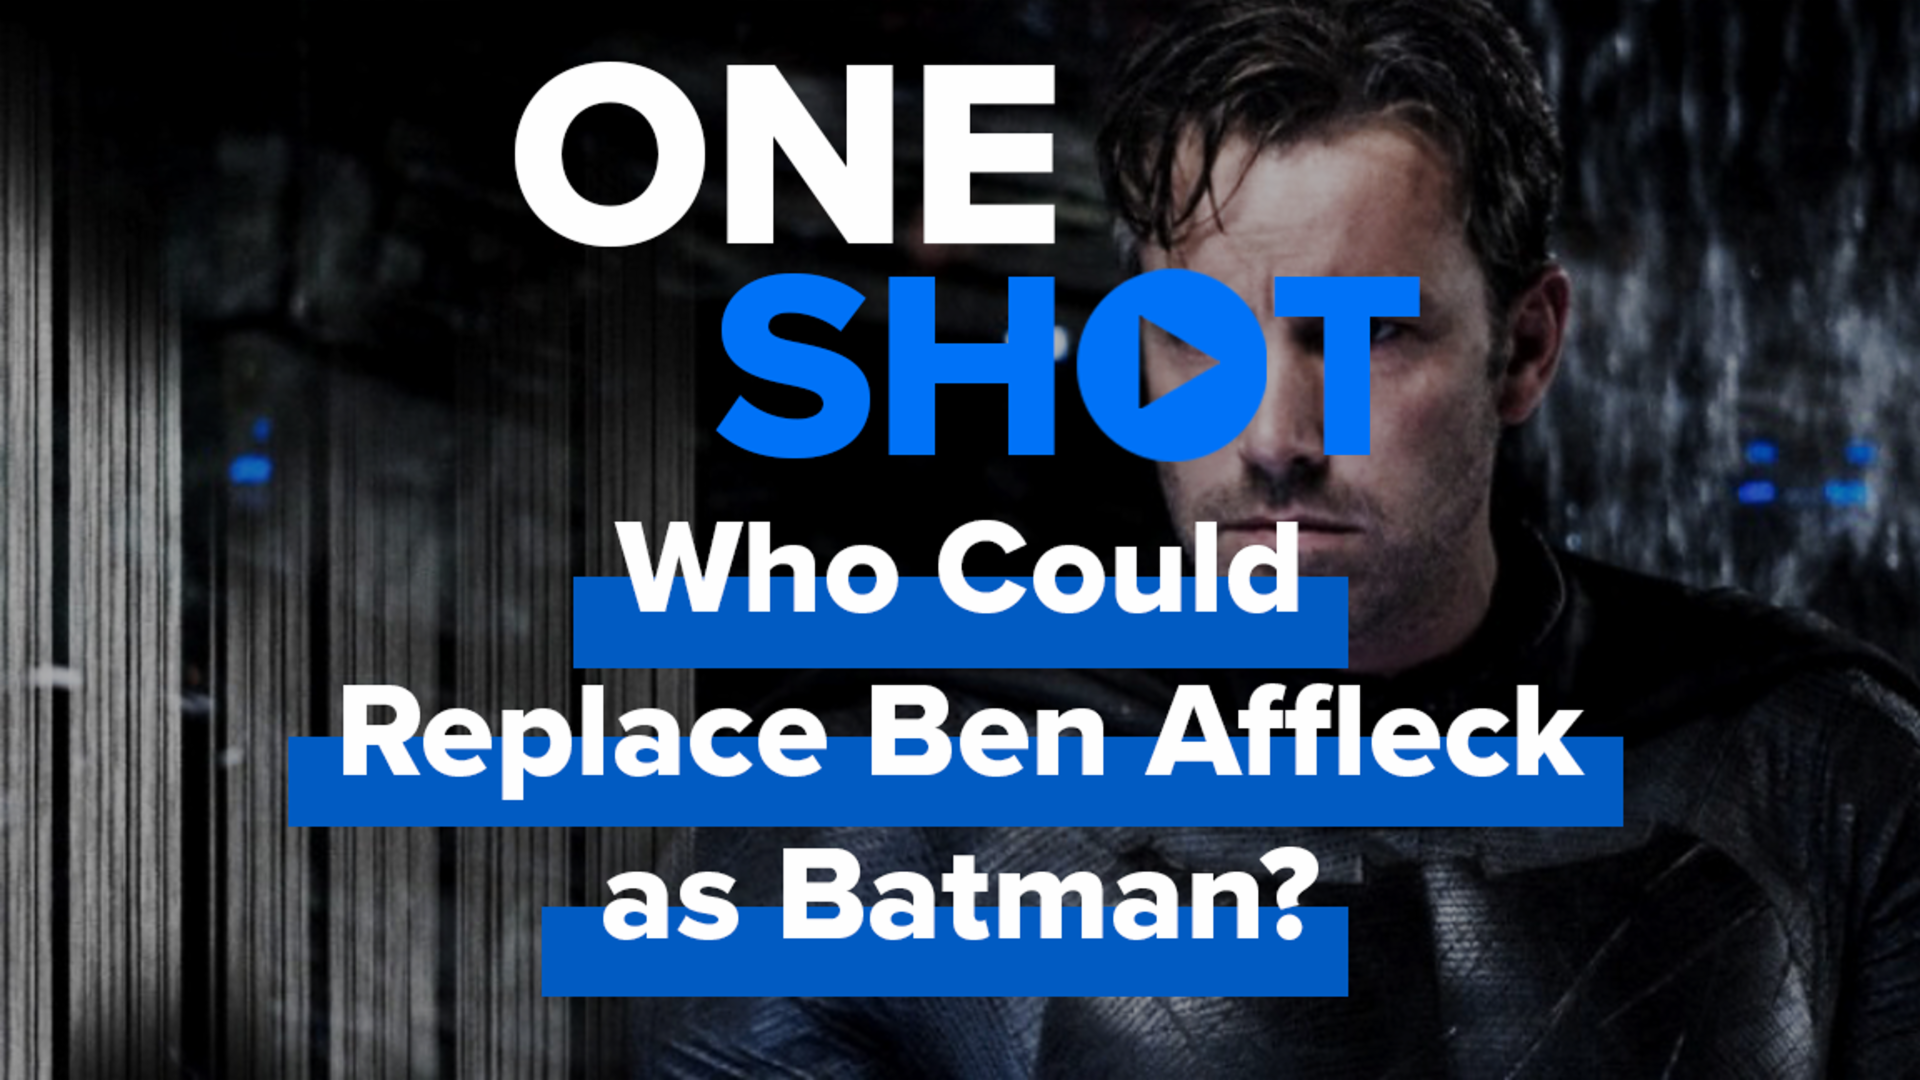 Who Could Replace Ben Affleck as Batman? - One Shot screen capture